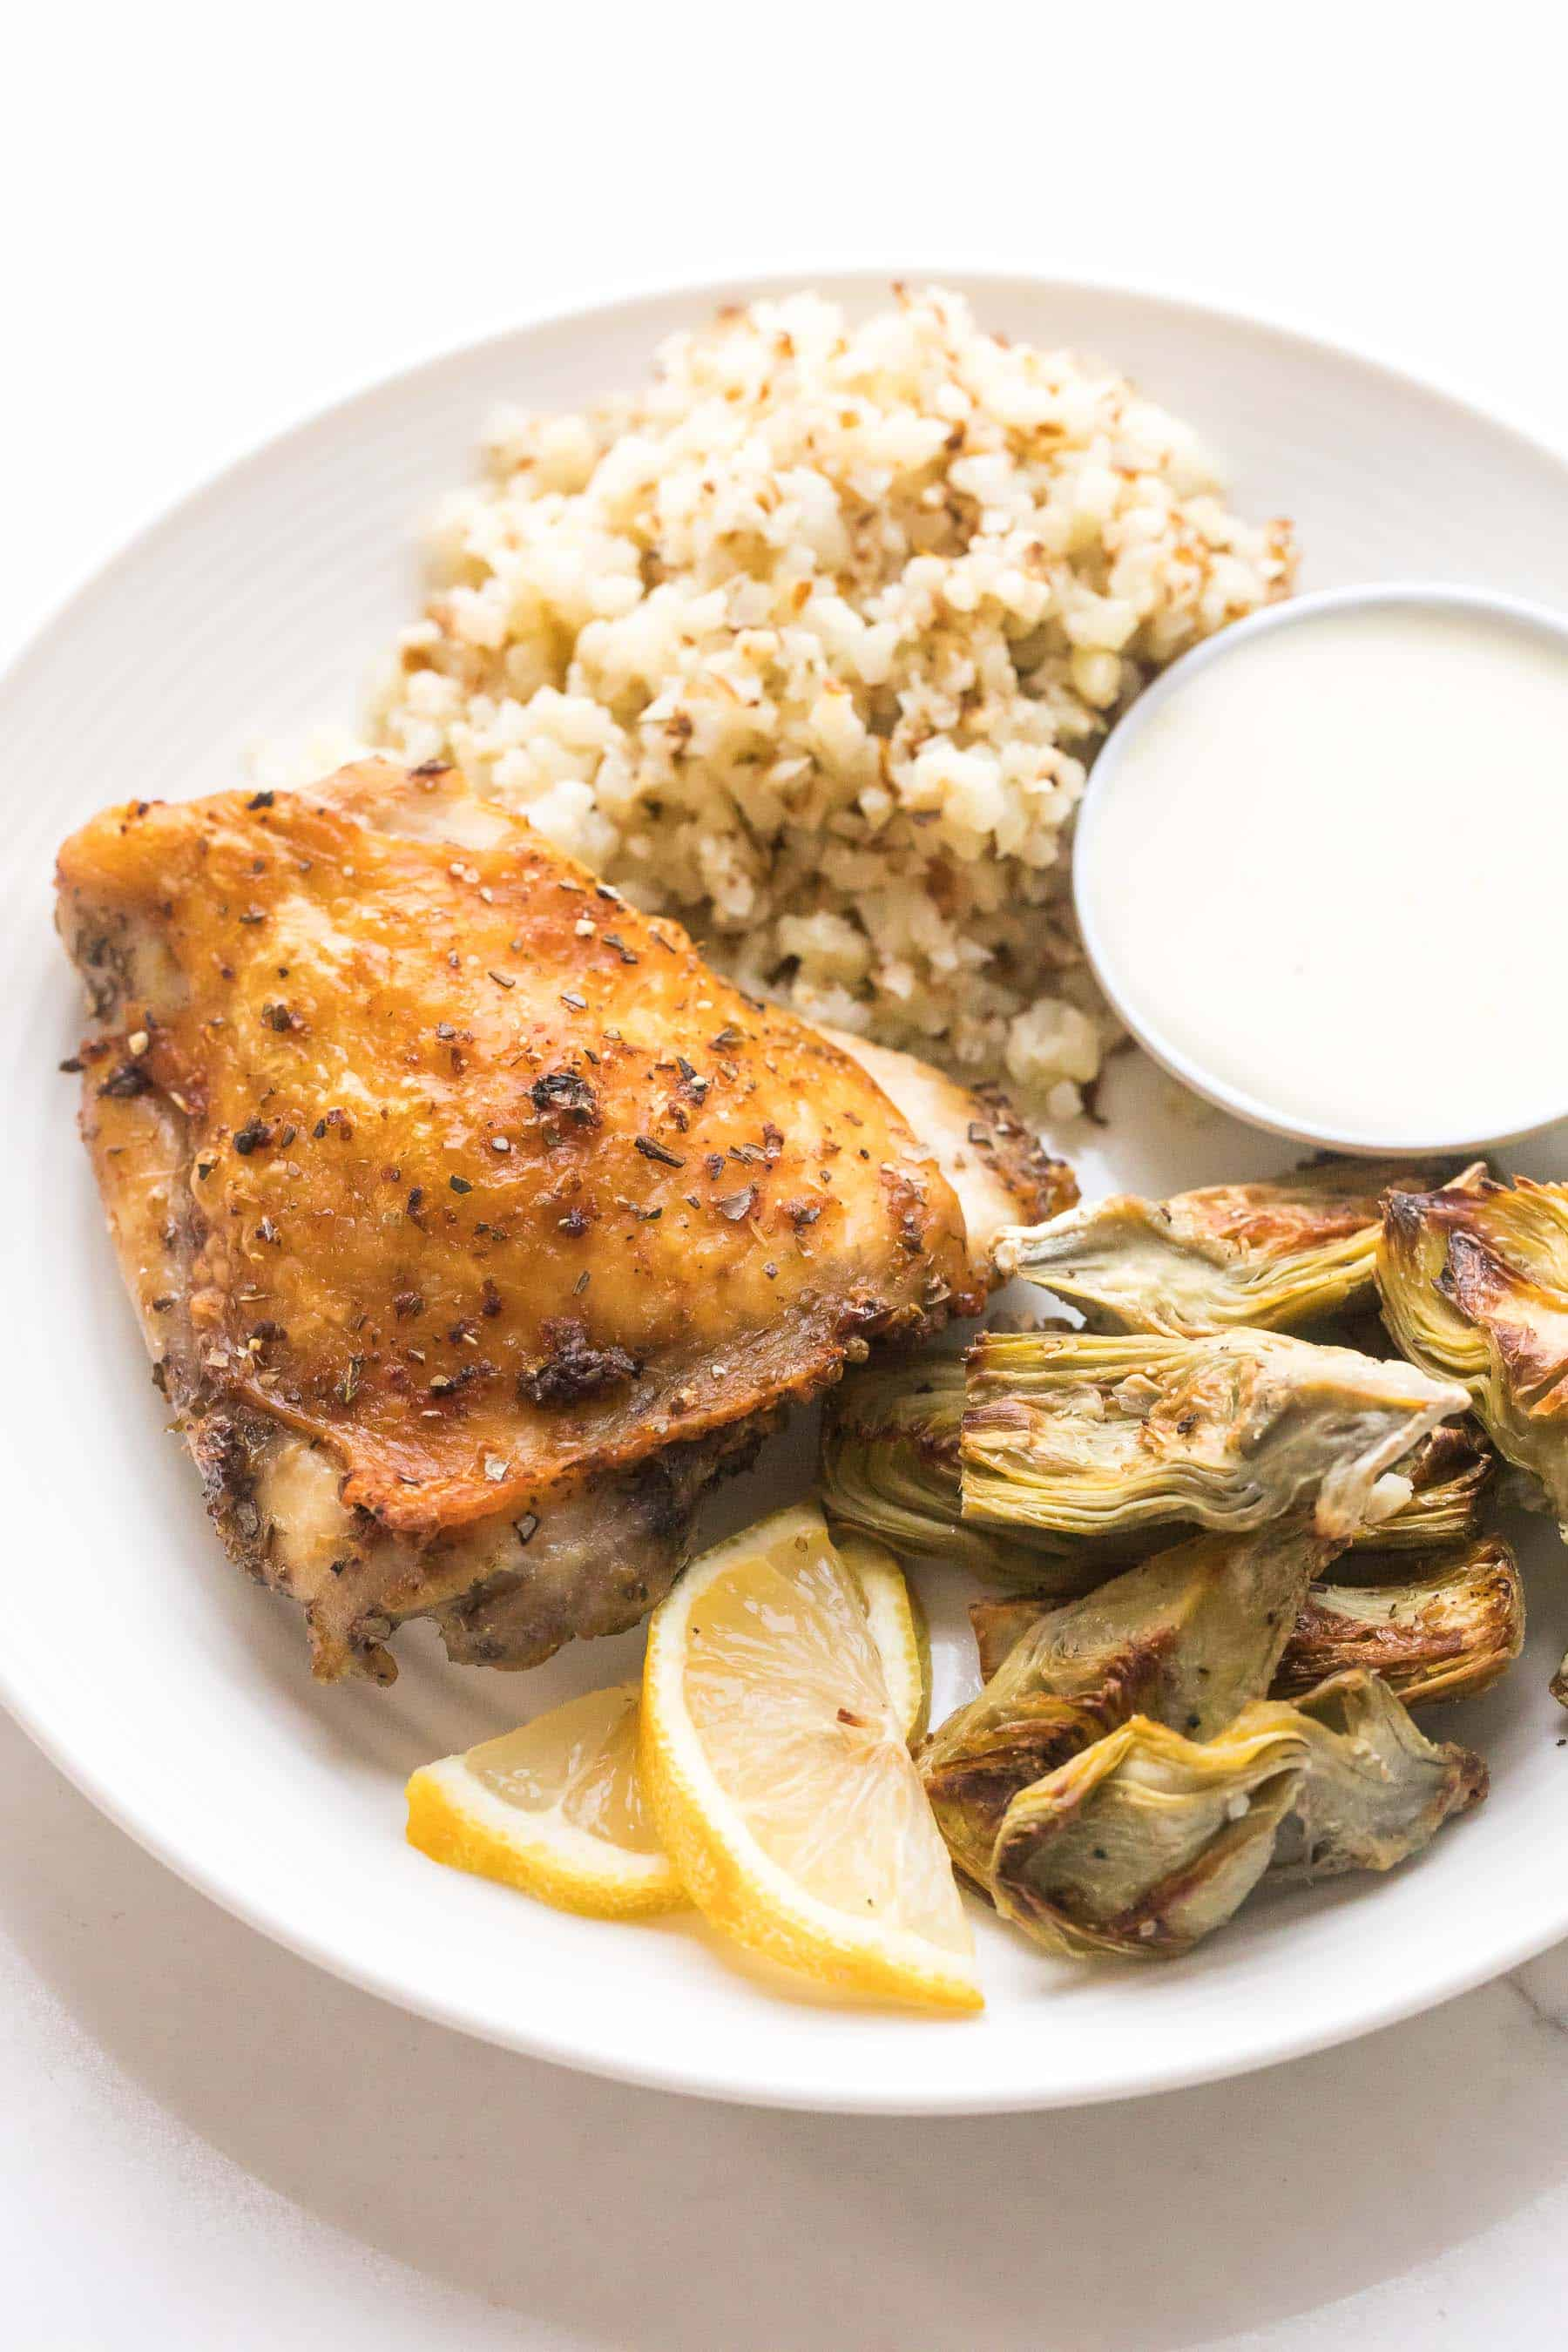 roasted chicken thigh, artichokes and cauliflower rice on a white plate